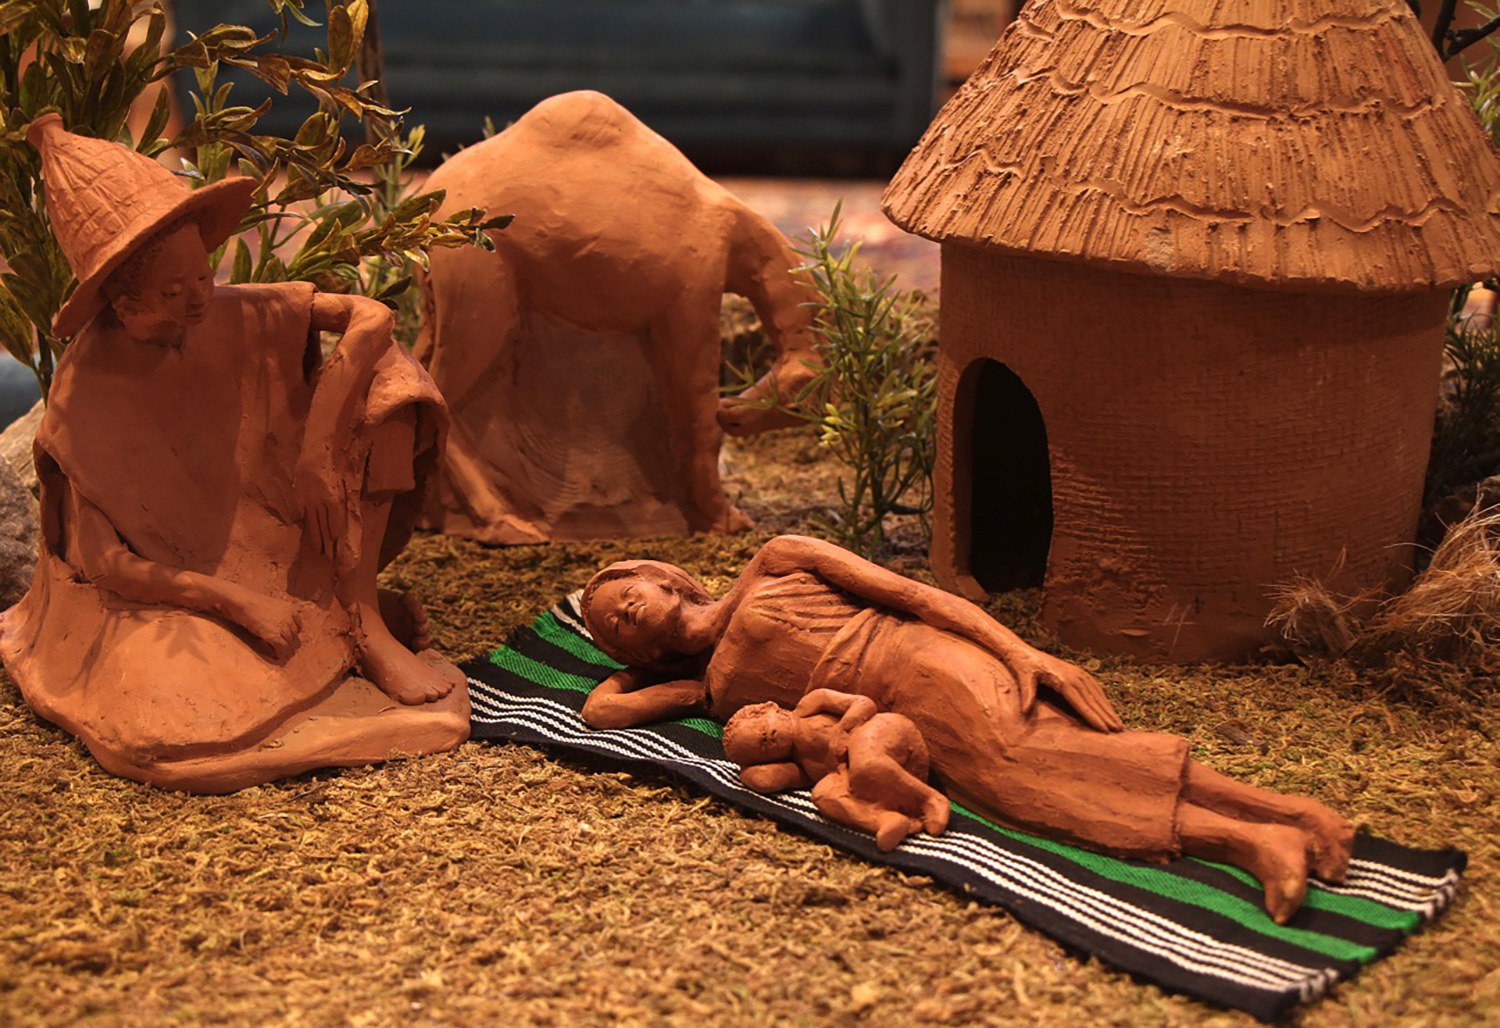 Figure 7:This Nativity was sculpted in Ghana by Mohammed Amin. Amin, a member of the Dagomba tribe, depicts Mary and Joseph as Dagomba. The hut, typical of northern Ghana, is made of mud and has a thatched roof. In 1996 one of Amin's Nativities won first place in Bellingham, Washington, at the International Creche Festival. On loan from the Knights of Columbus Museum, New Haven, Connecticut.